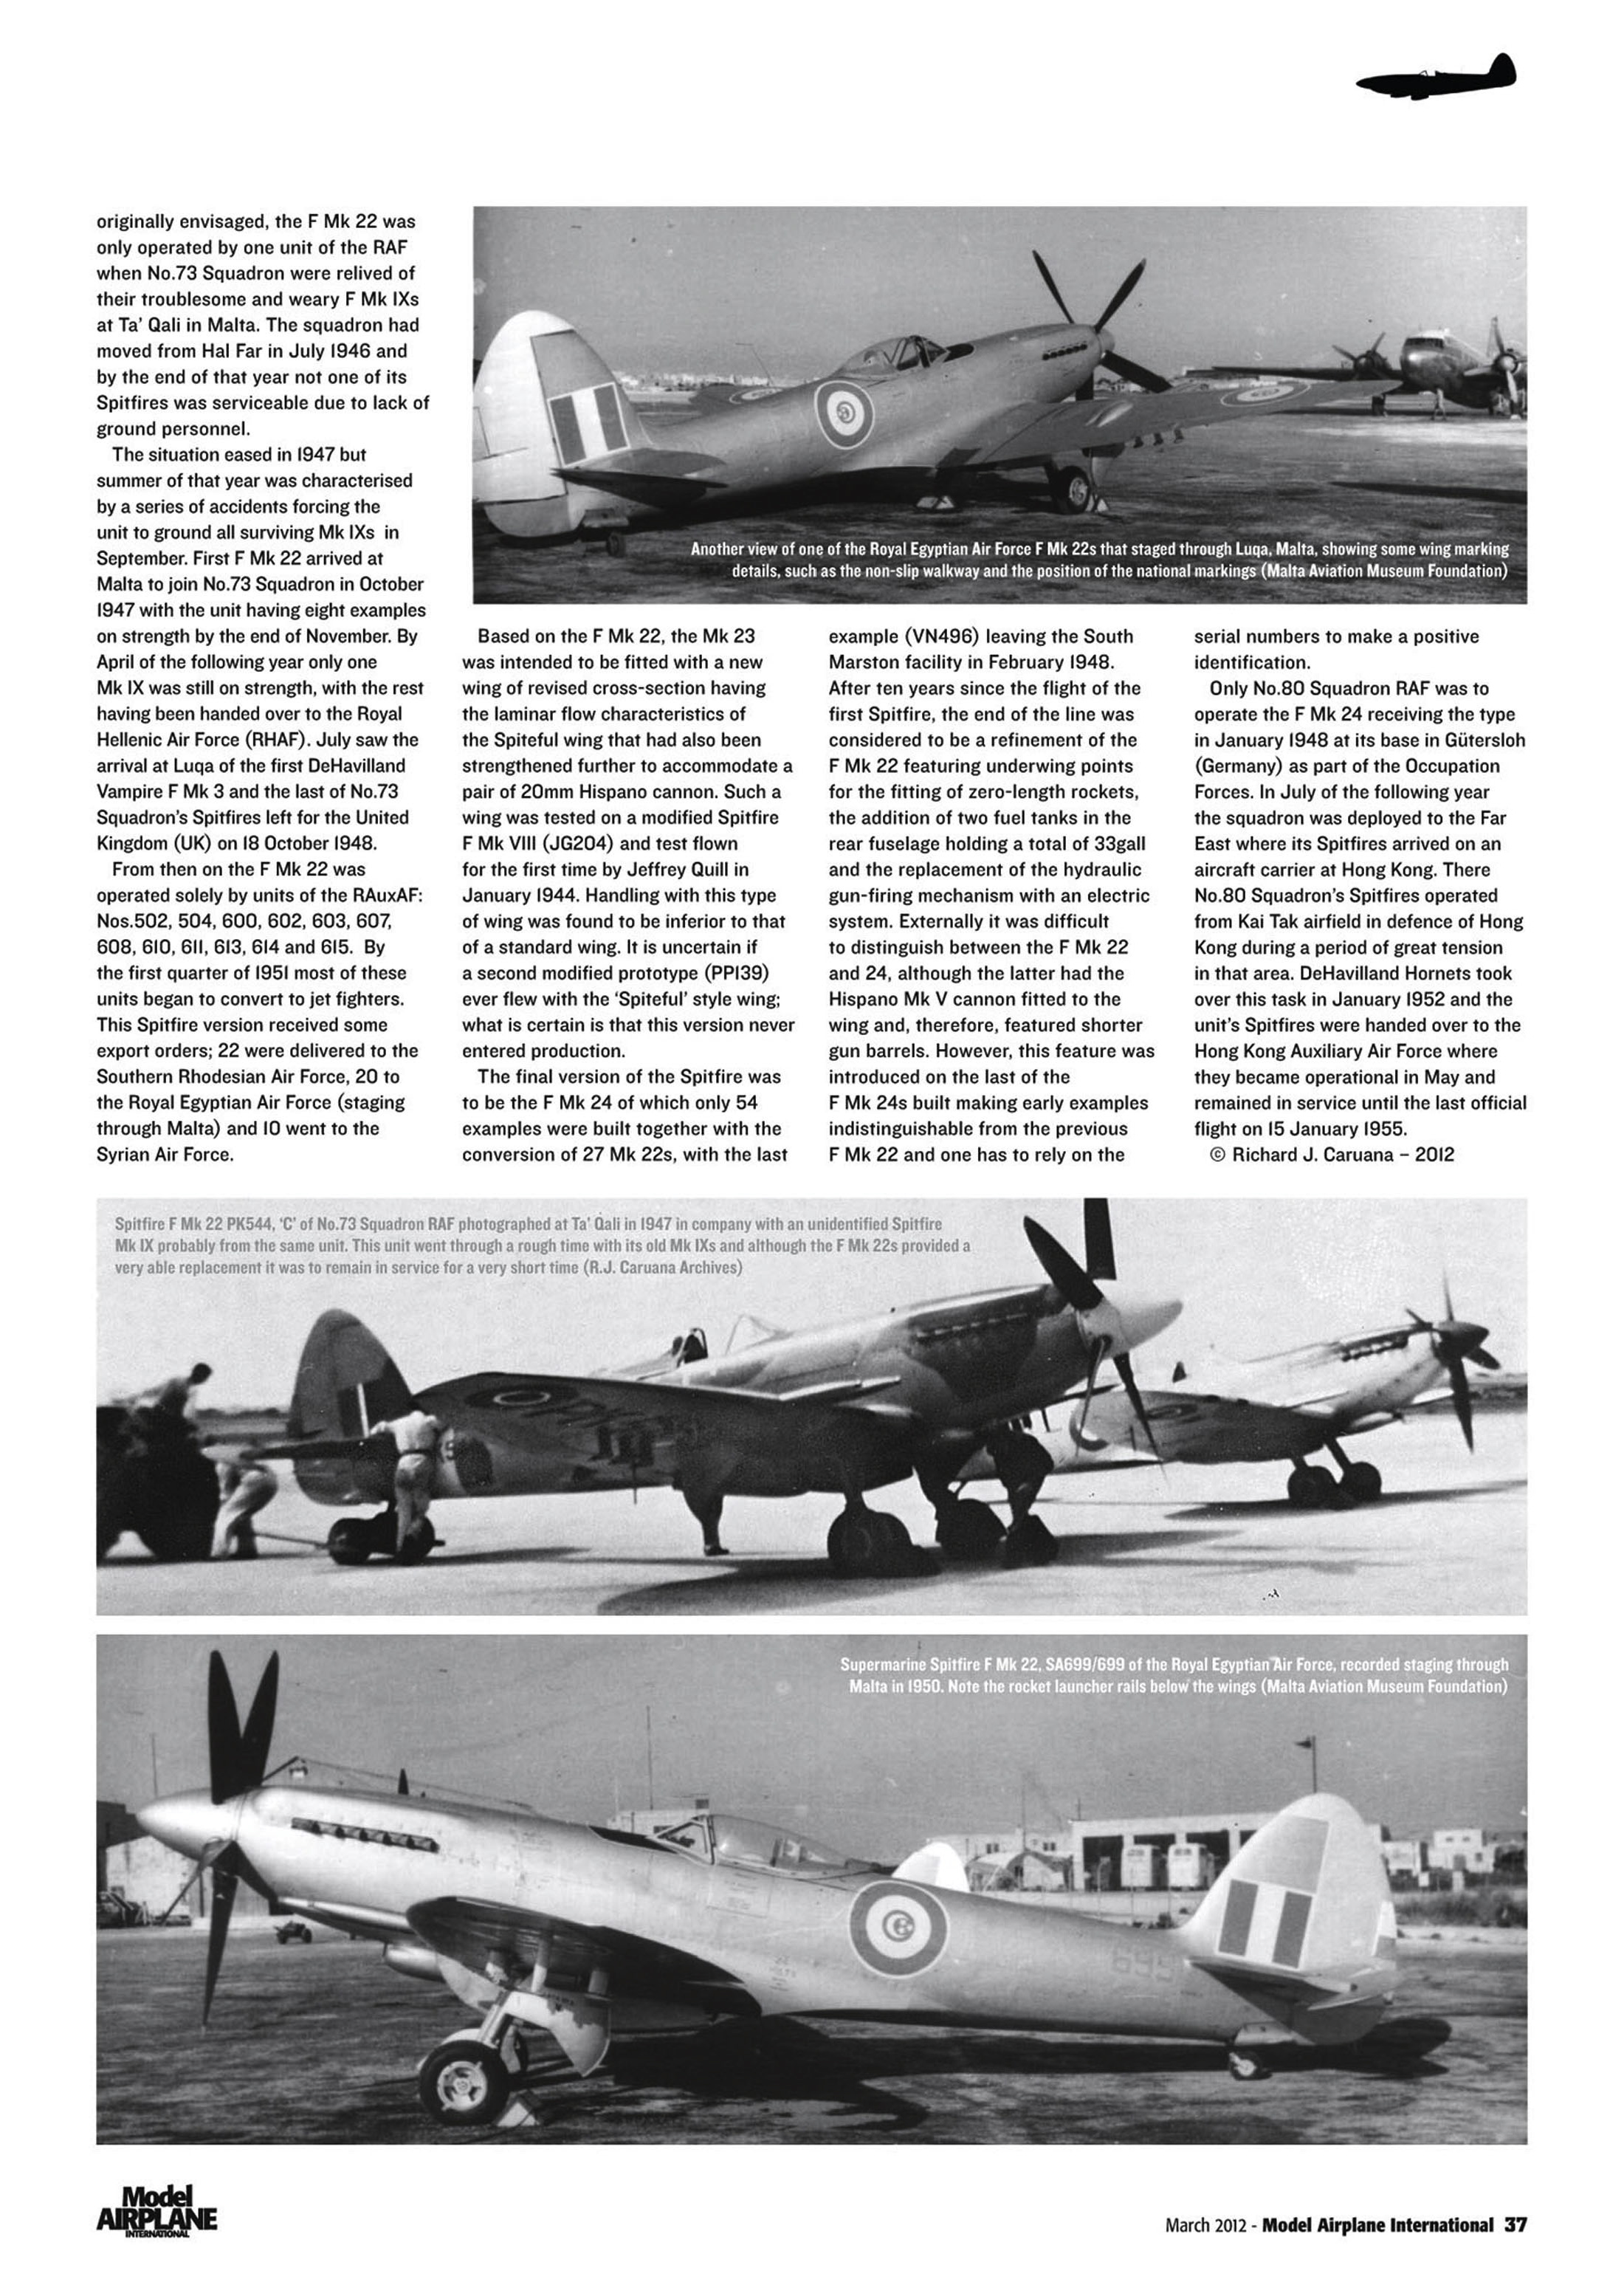 Supermarine Spitfire profiles by Model Airplane Int 080 2012 03 Page 37